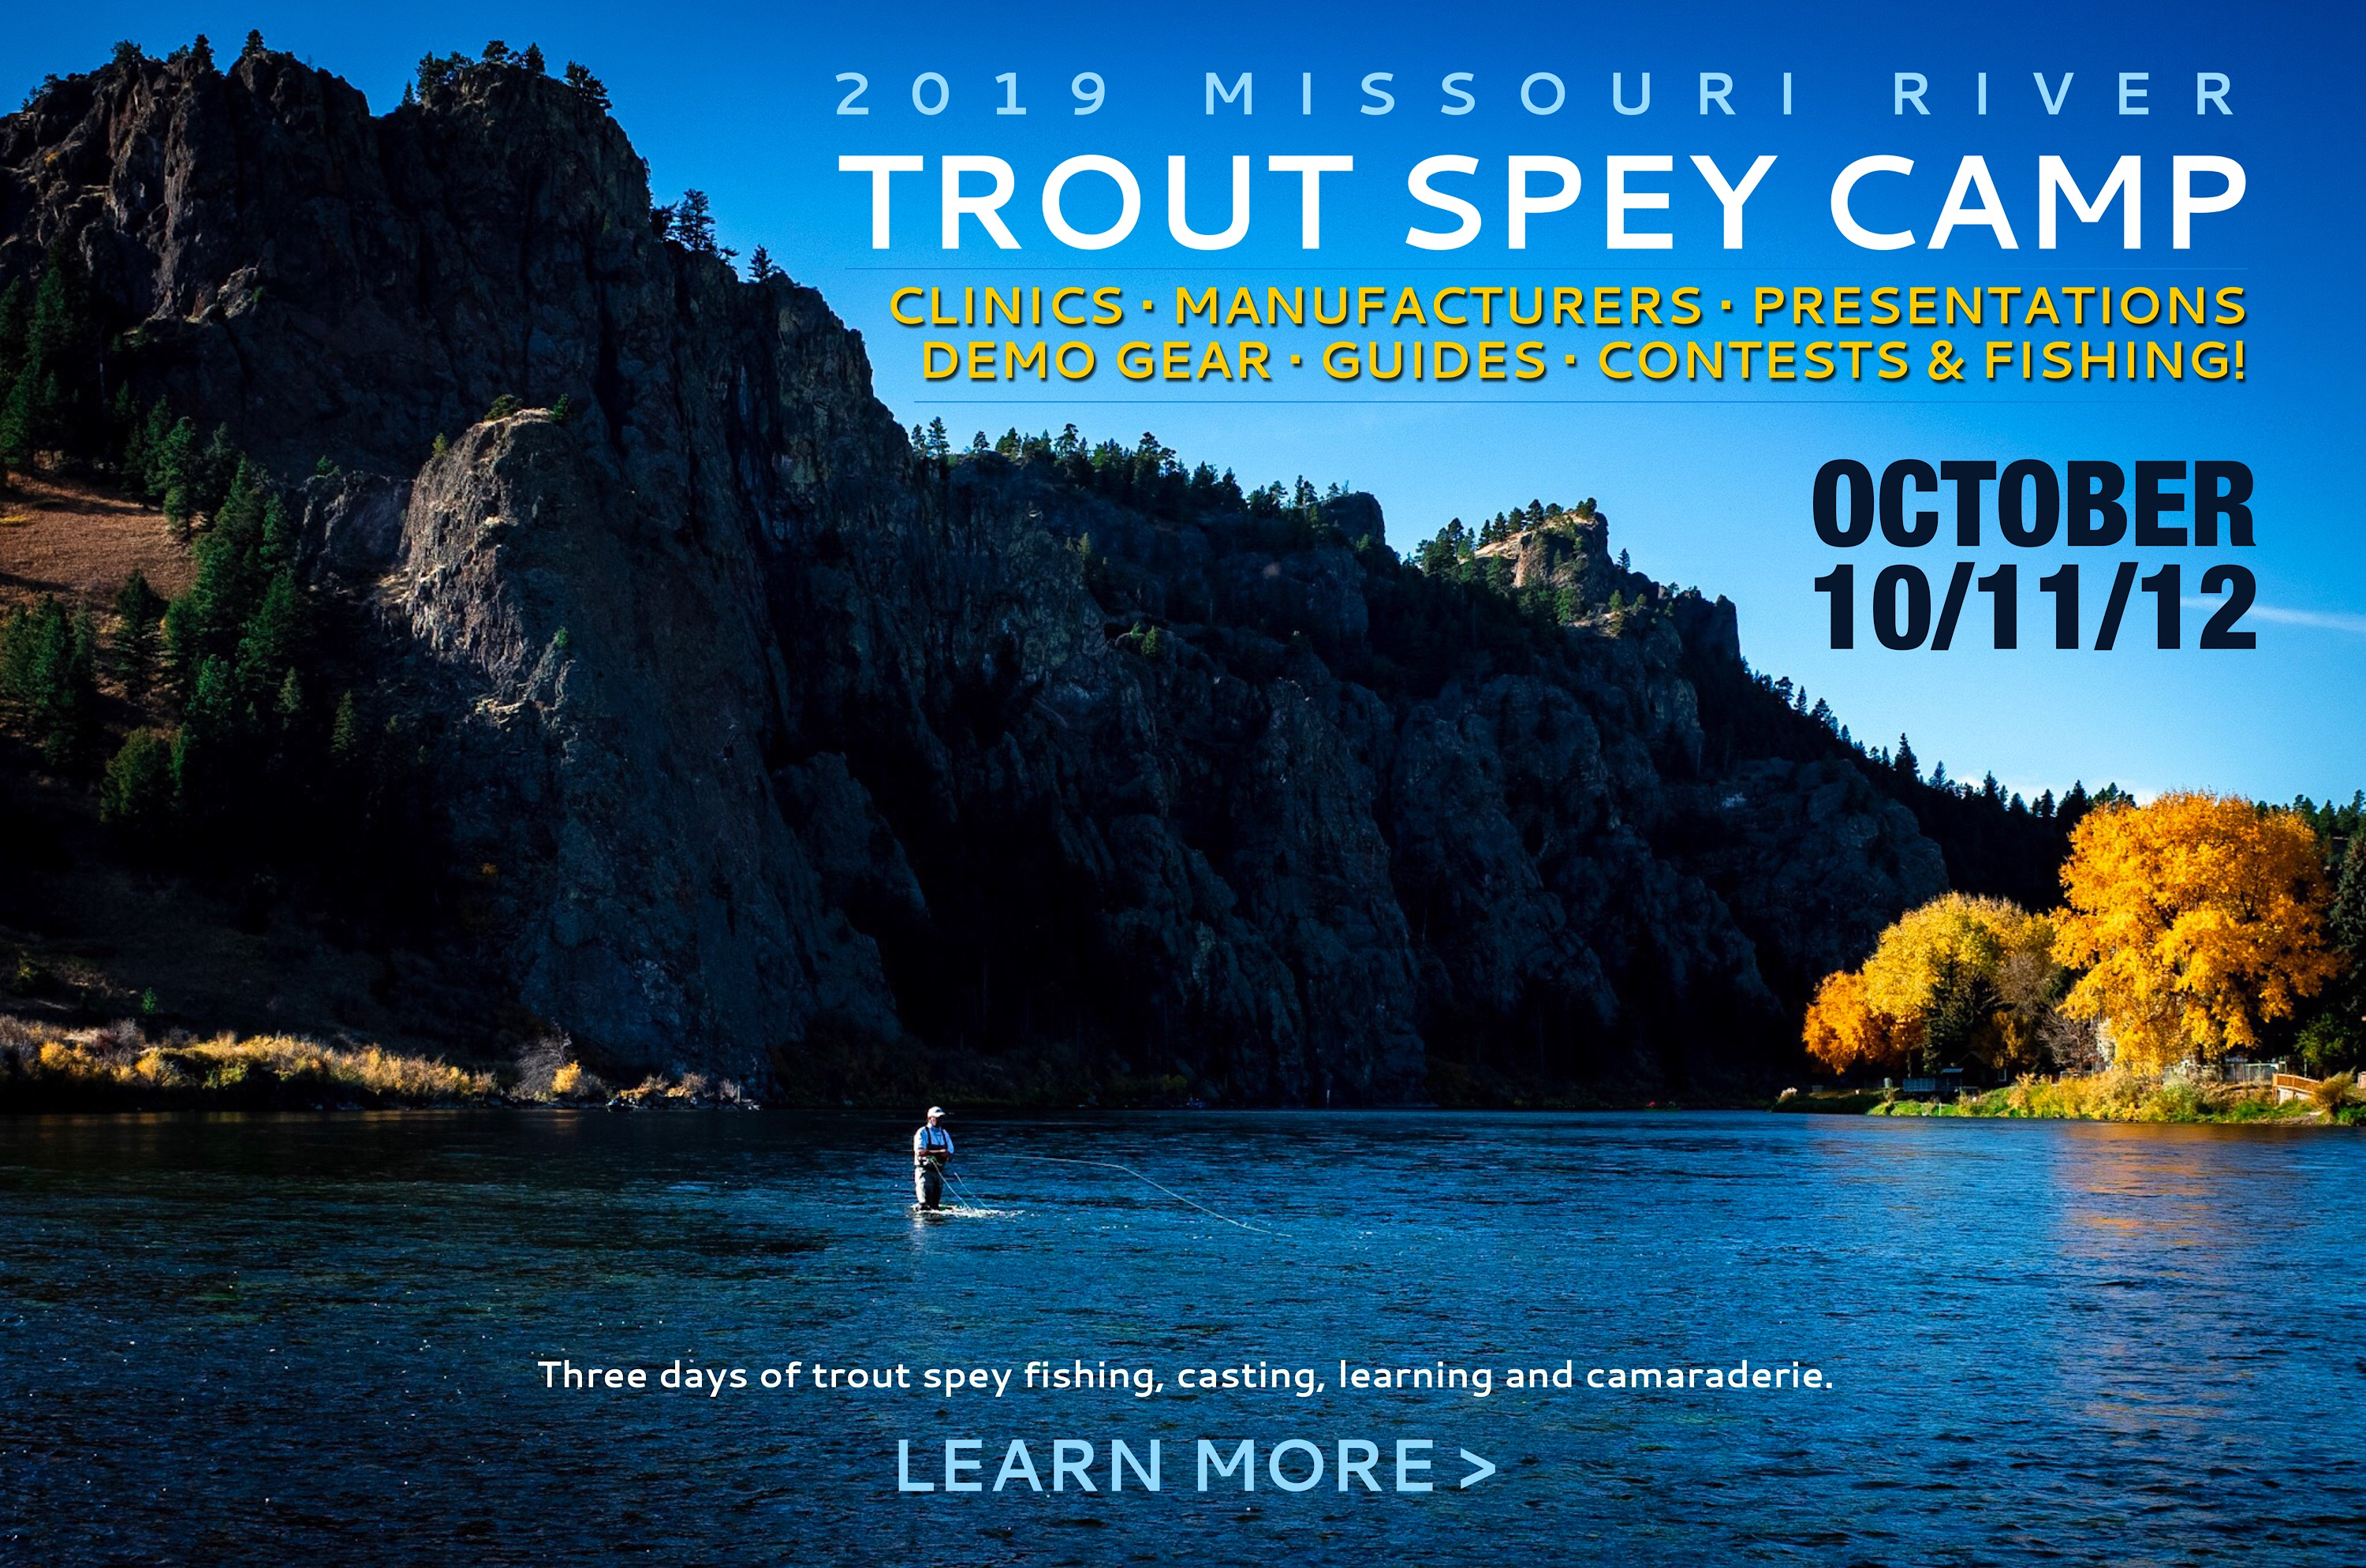 Trout Spey Clave